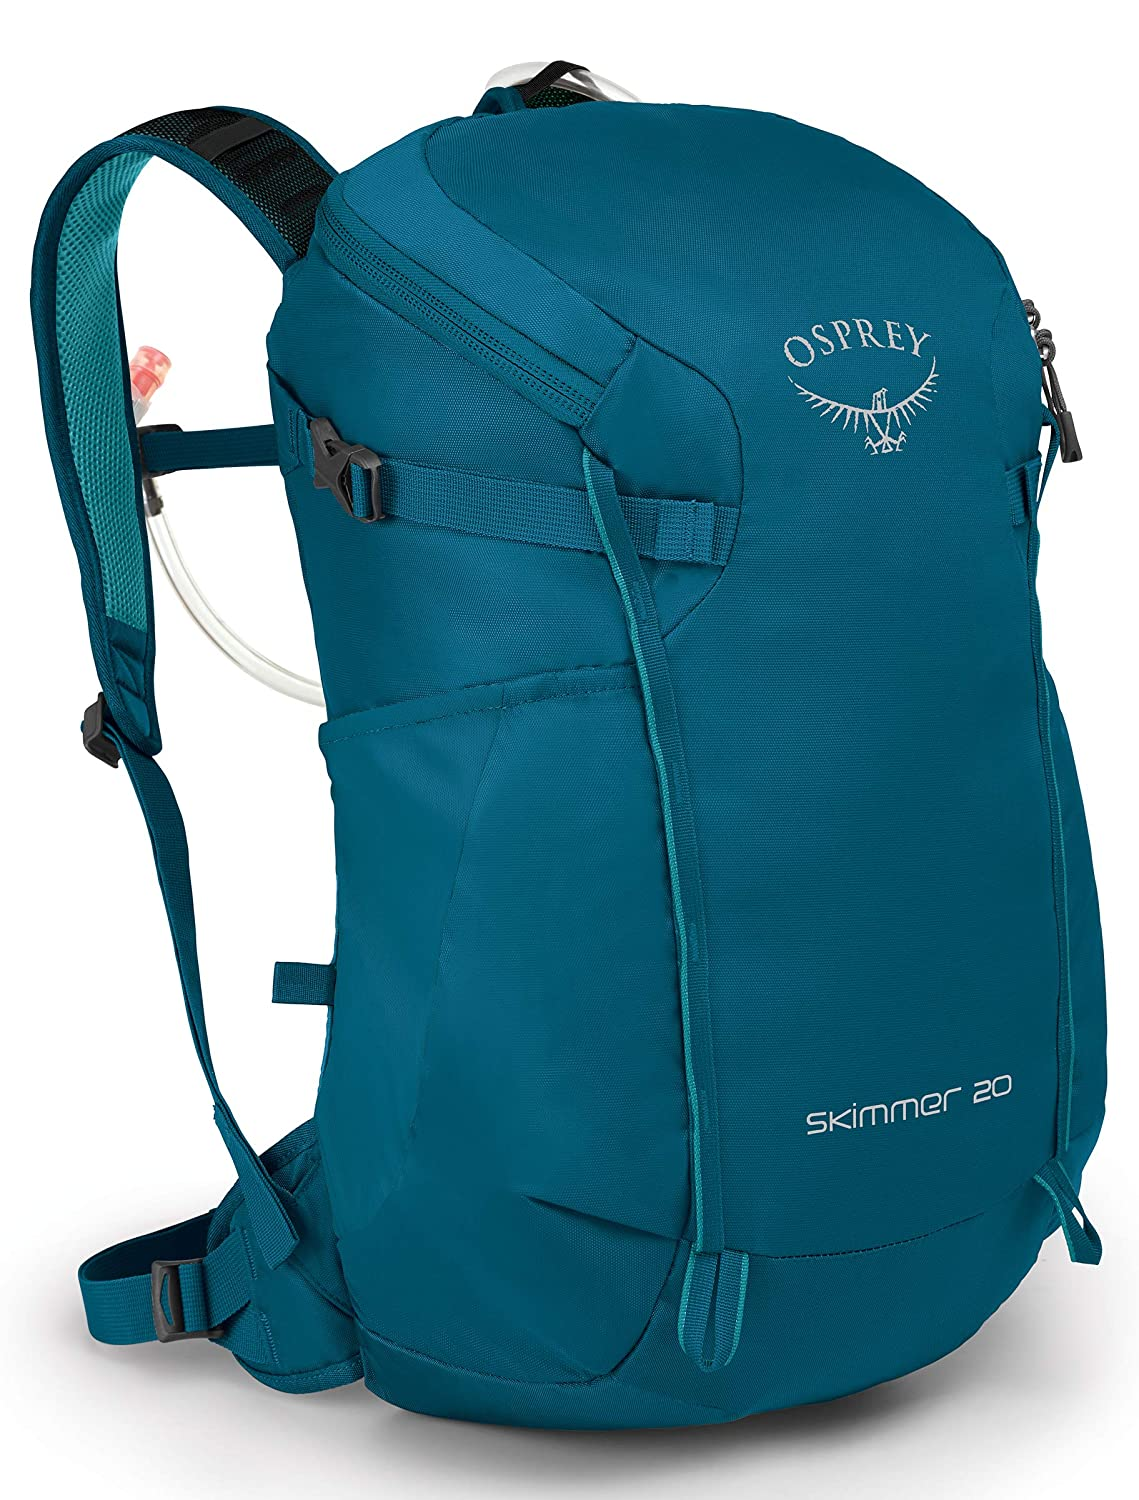 Osprey Packs Skimmer 20 Women s Hiking Hydration Backpack